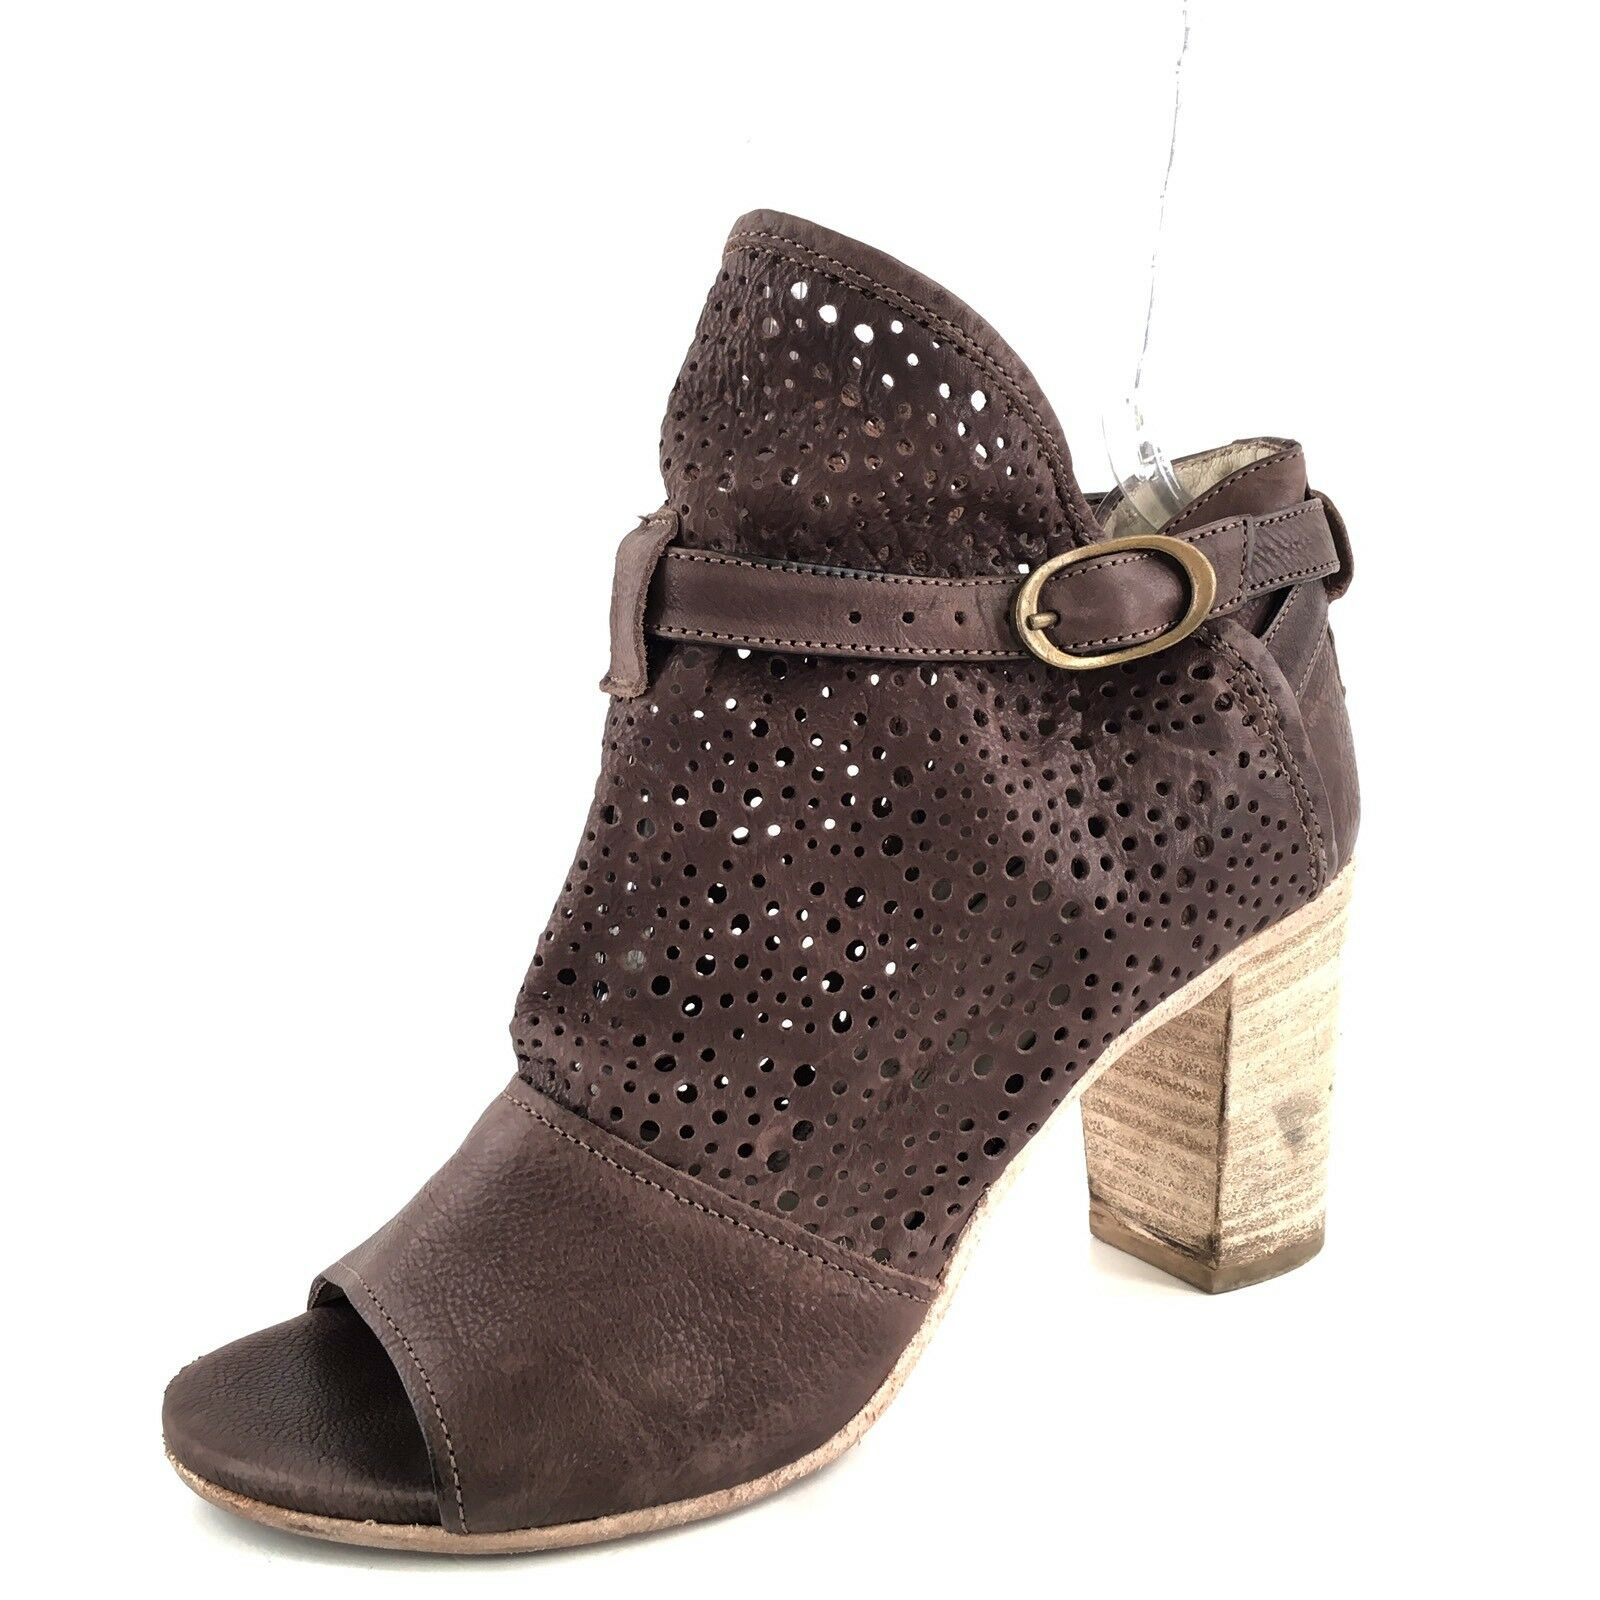 Latitude Femme Perforated Brown Leather Leather Leather Ankle Open Toe Boots Women's Size 37 M 1d21ca